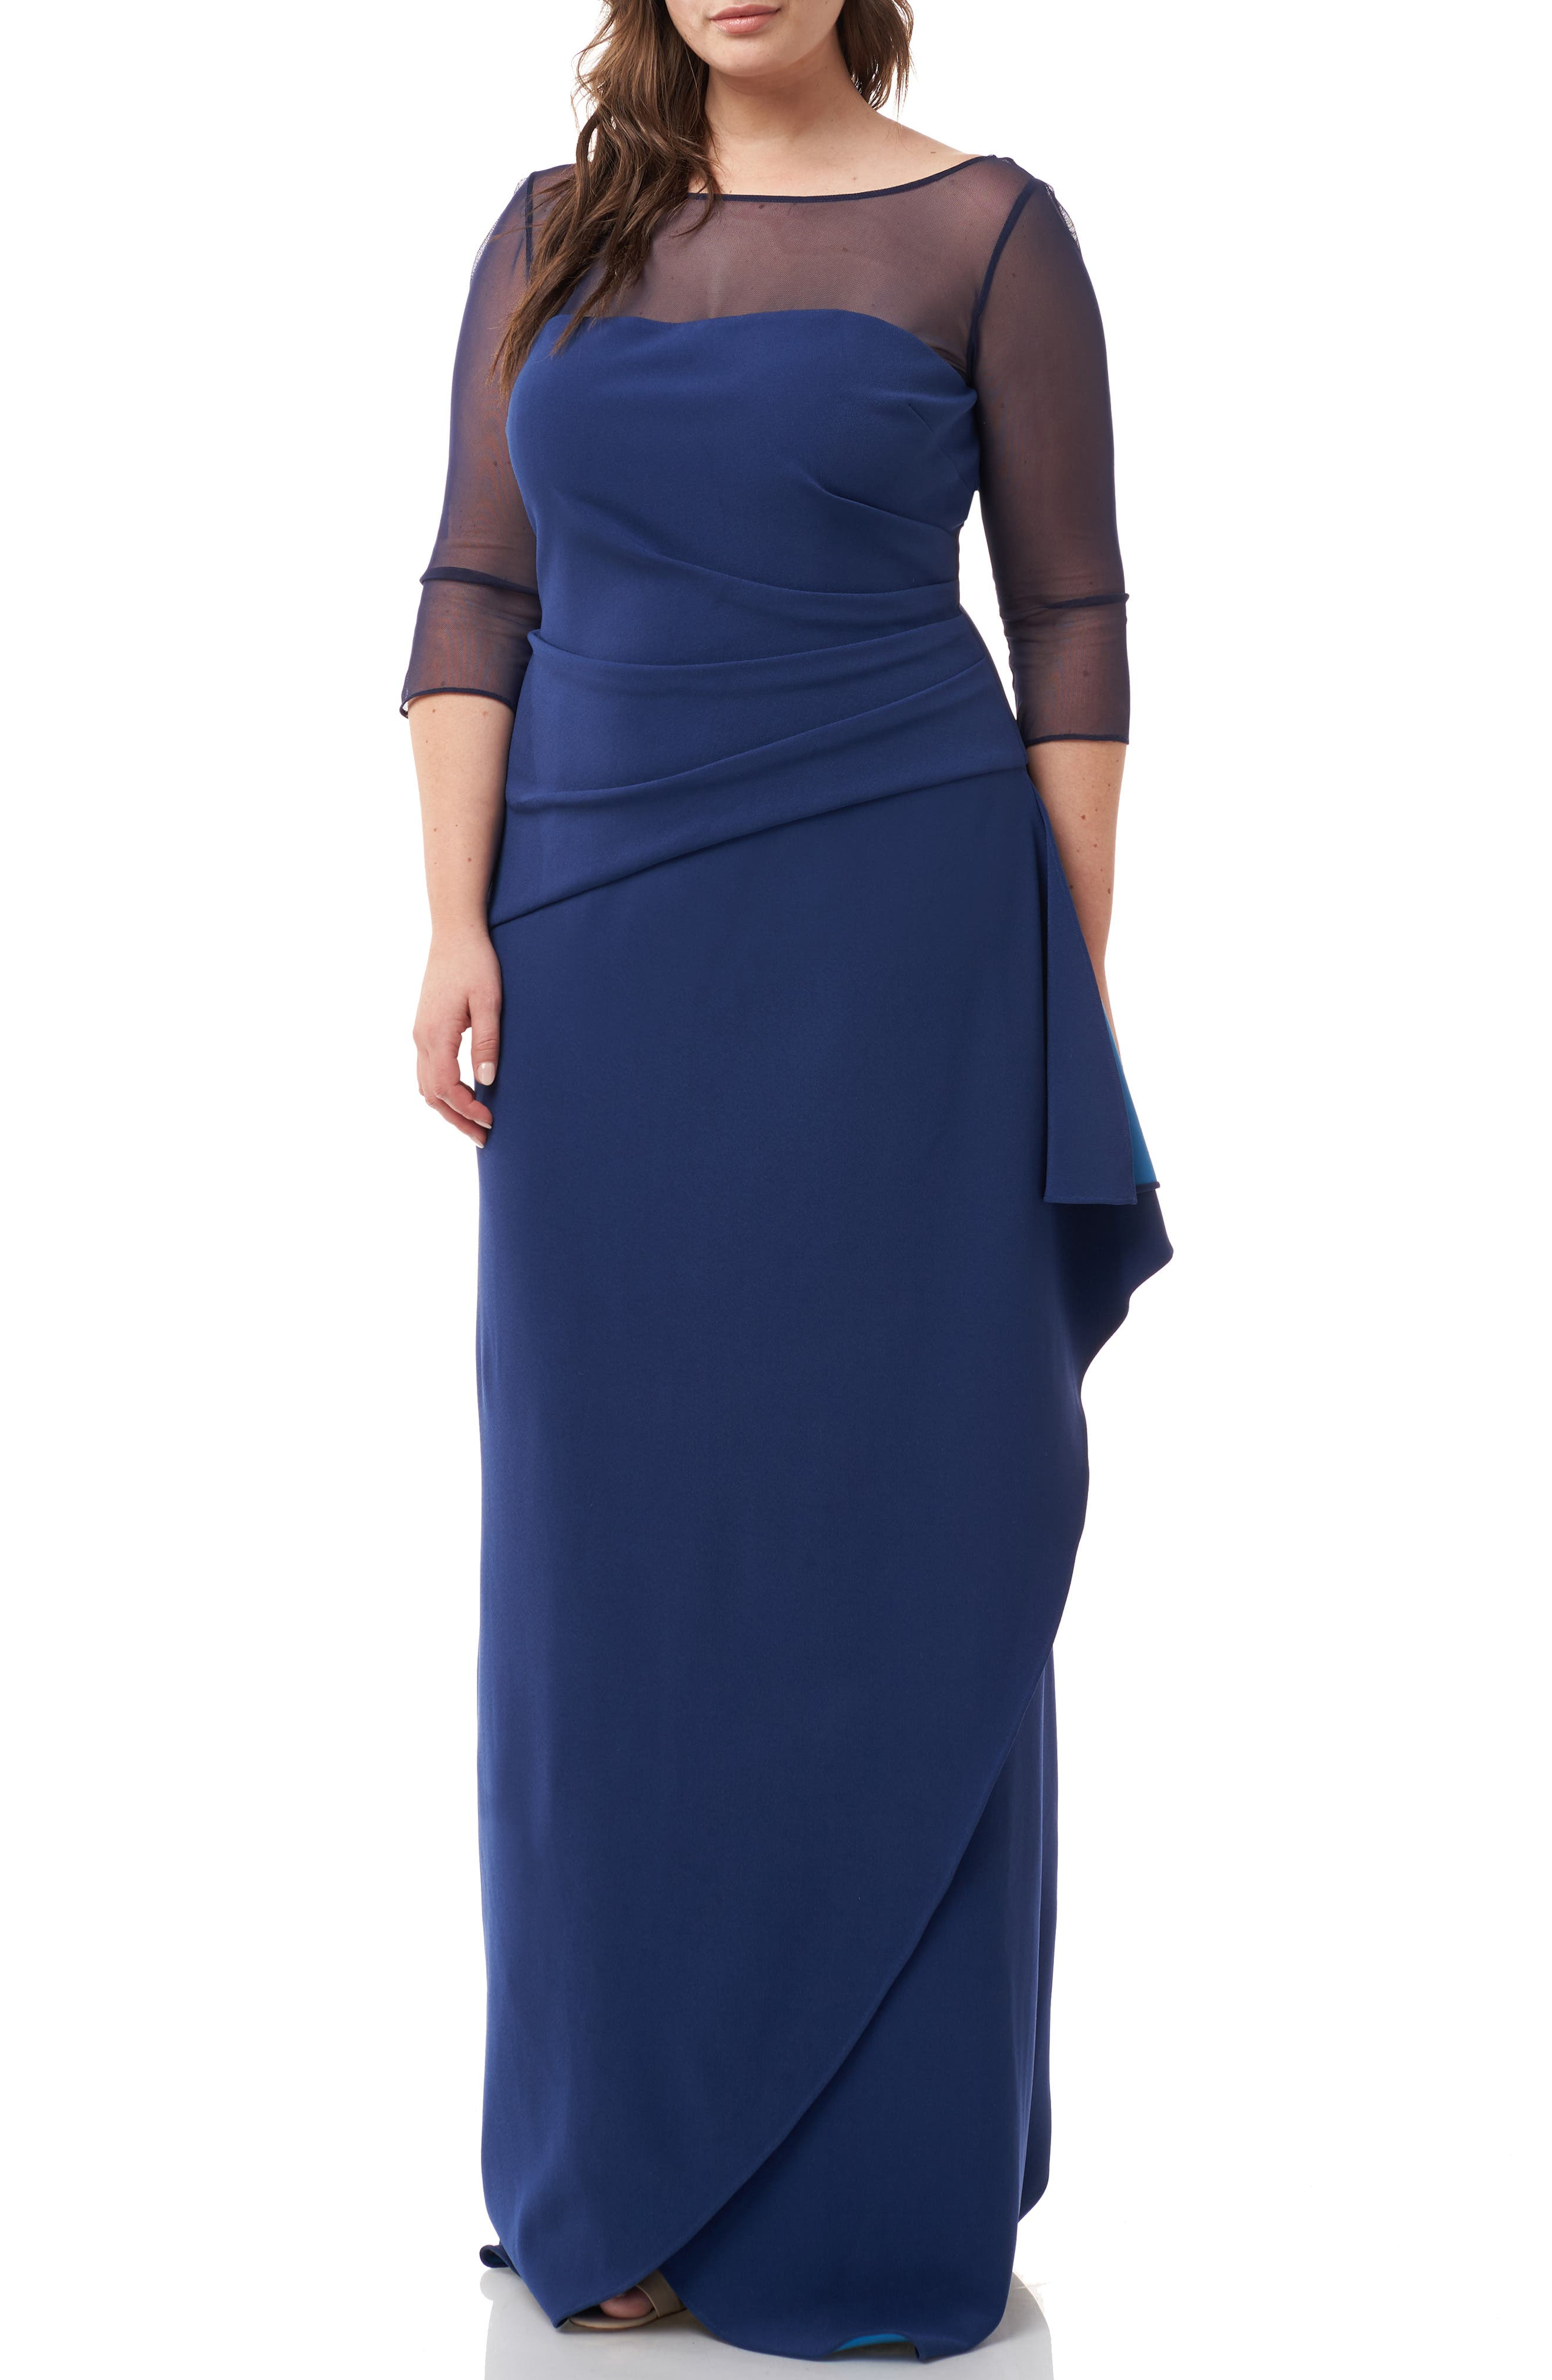 Ruched Crepe Evening Dress, Main, color, NAVY TURQUOISE